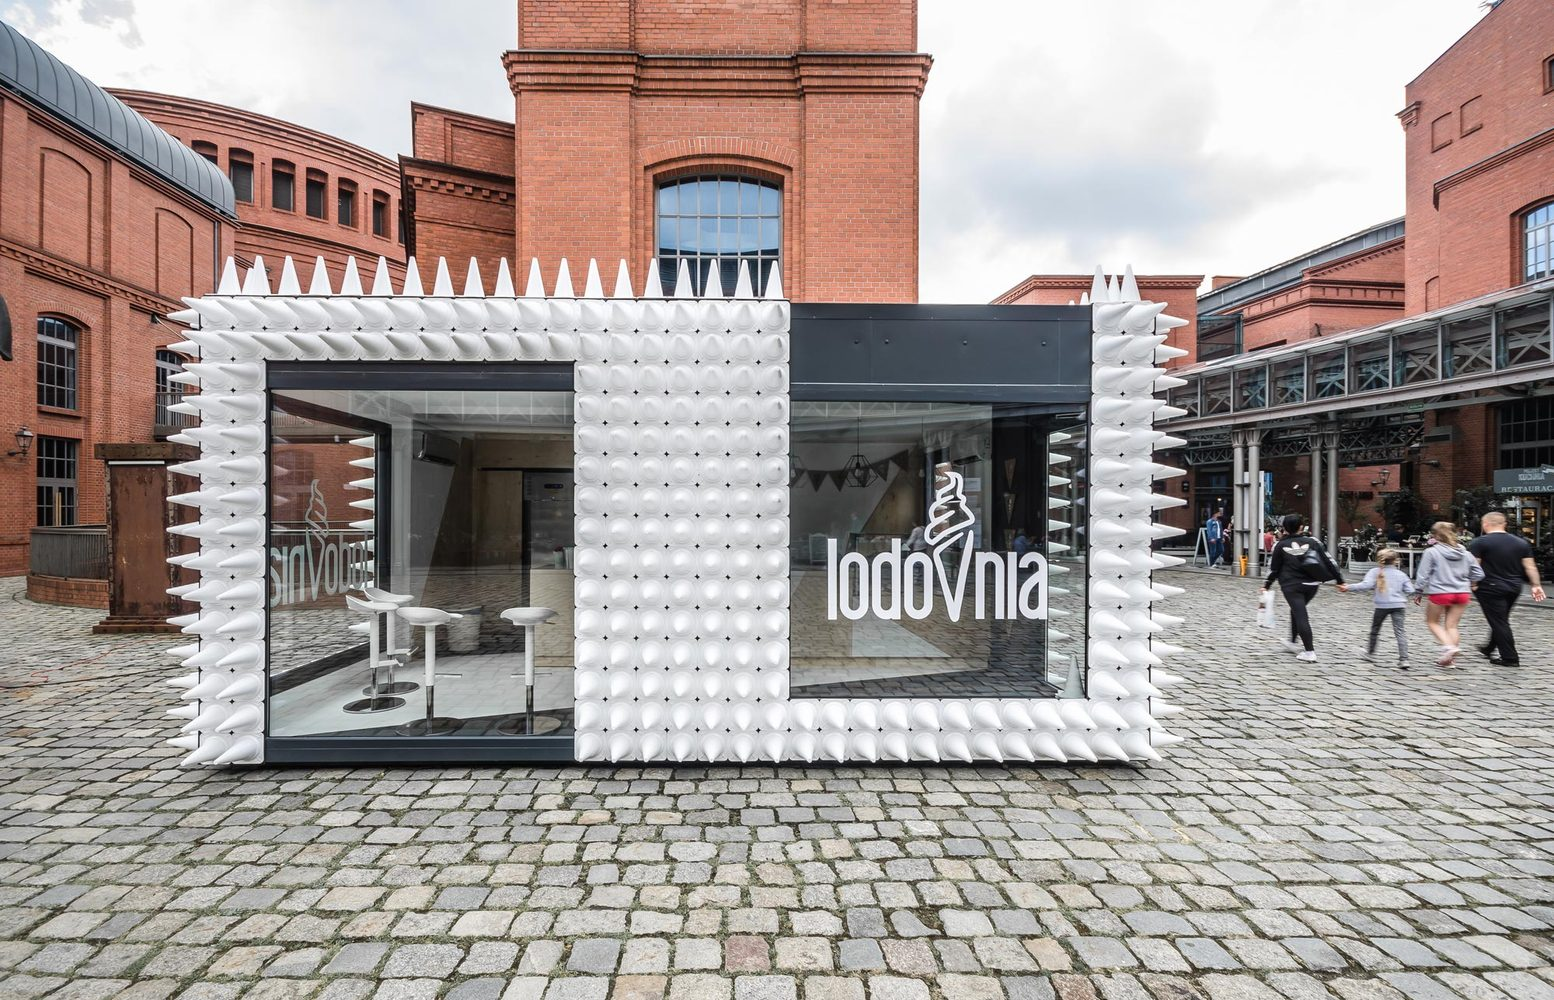 1_LODOVNIA Ice Cream Shop_mode lina architekci_Inspirationist